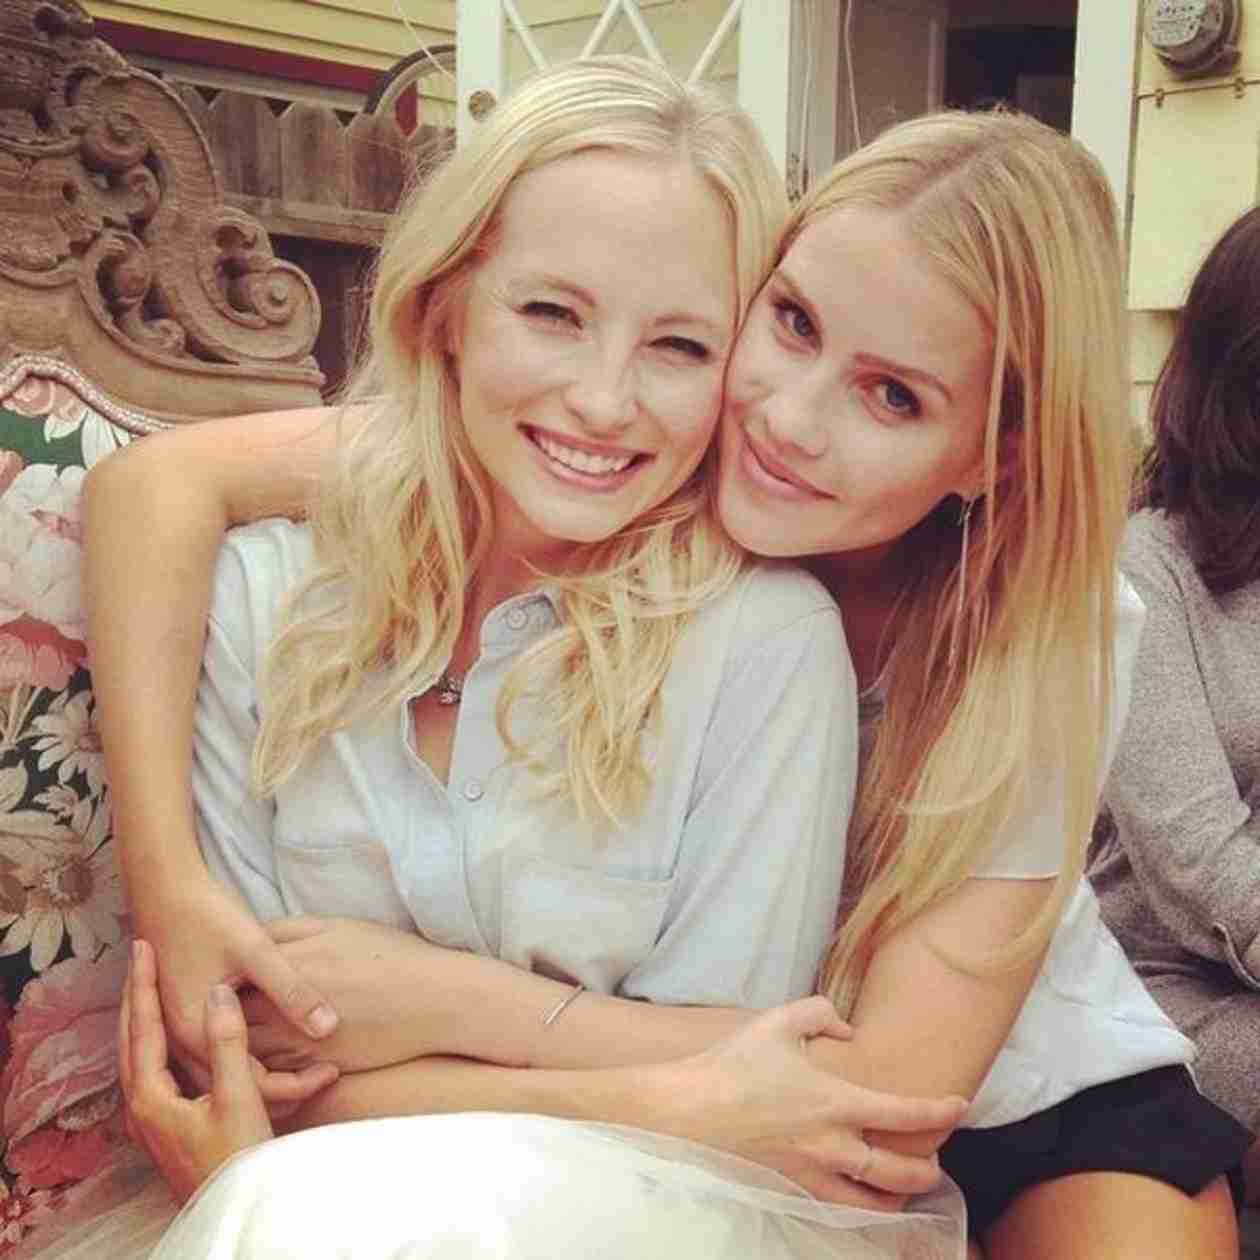 Candice Accola Celebrates Bridal Shower With Claire Holt — When Is the Wedding? (PHOTO)